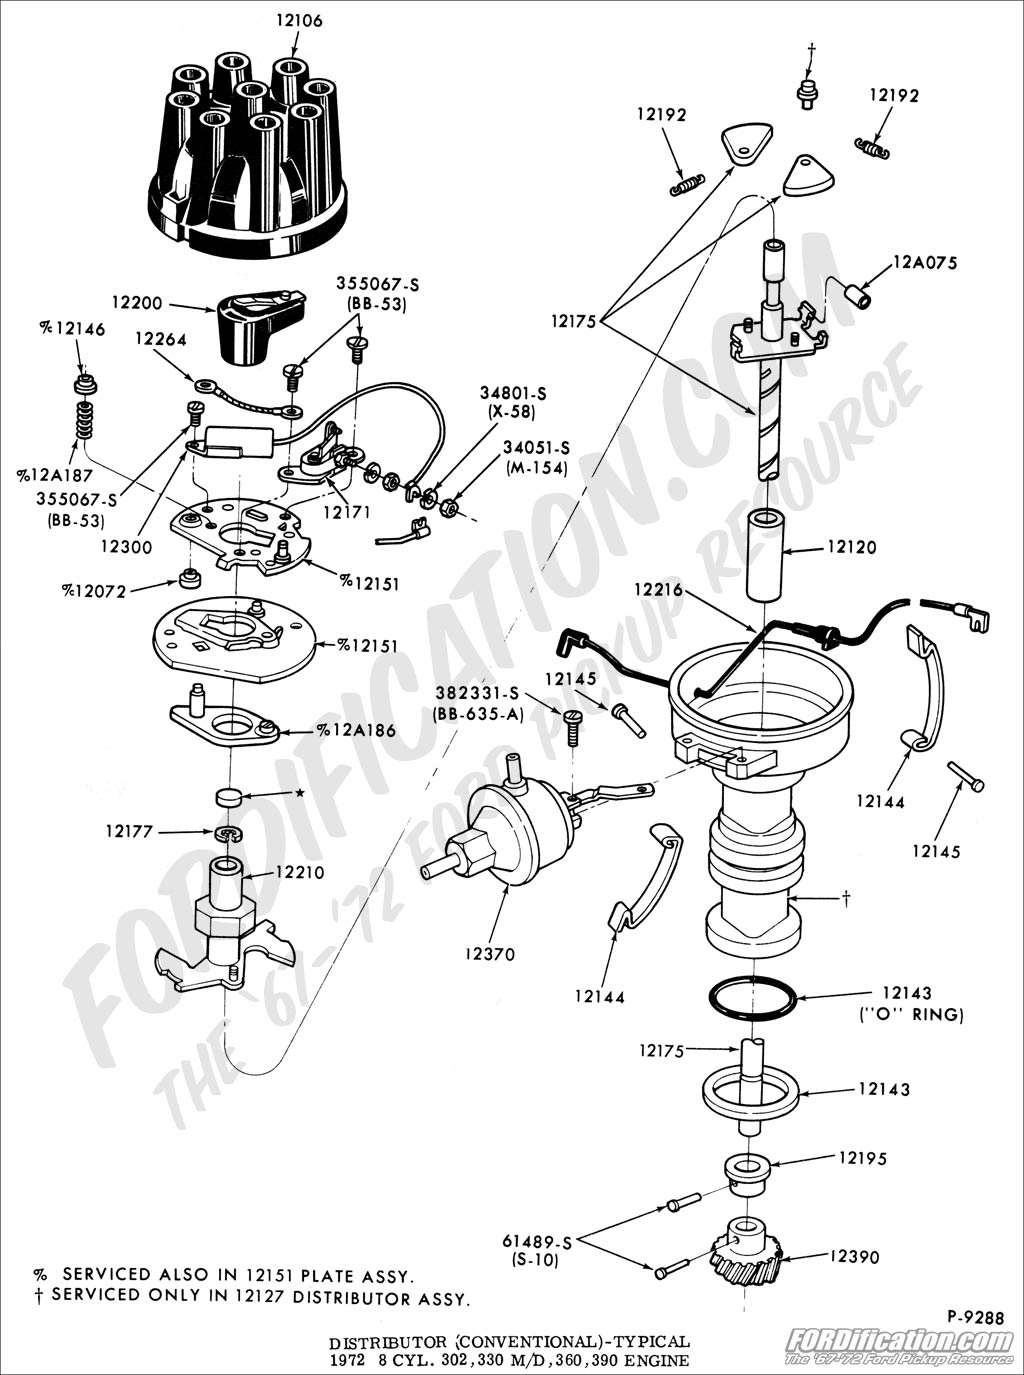 Ford Truck Technical Drawings And Schematics Section I Dump Body Wiring Harness Electrical